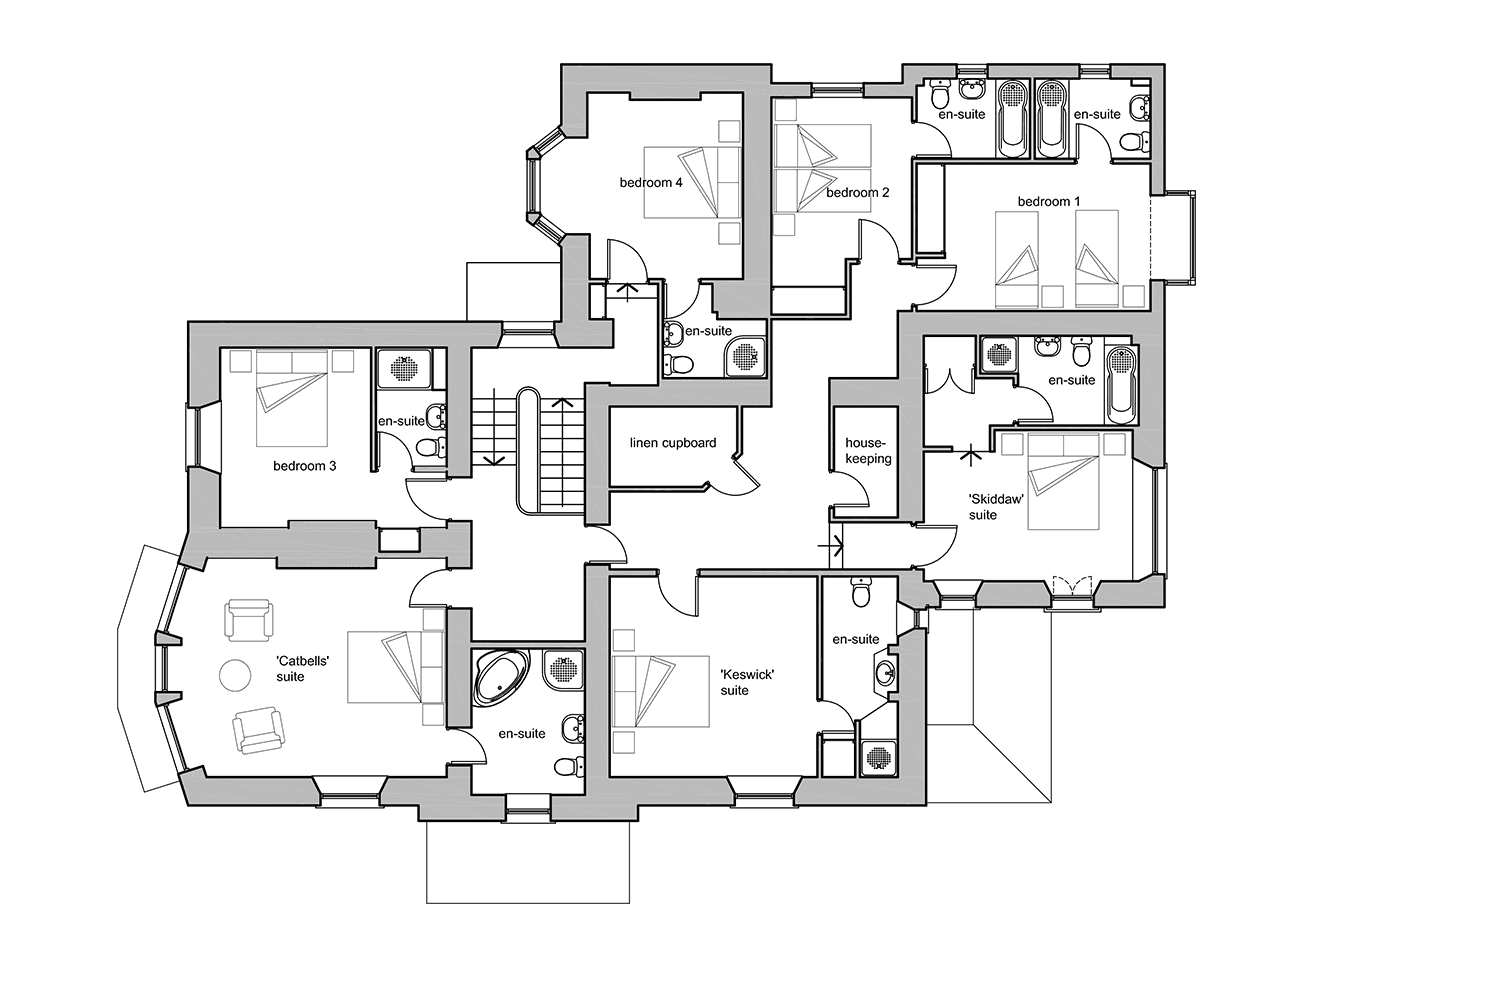 Floor Plans — Derwentwater House, Keswick, the Lake District